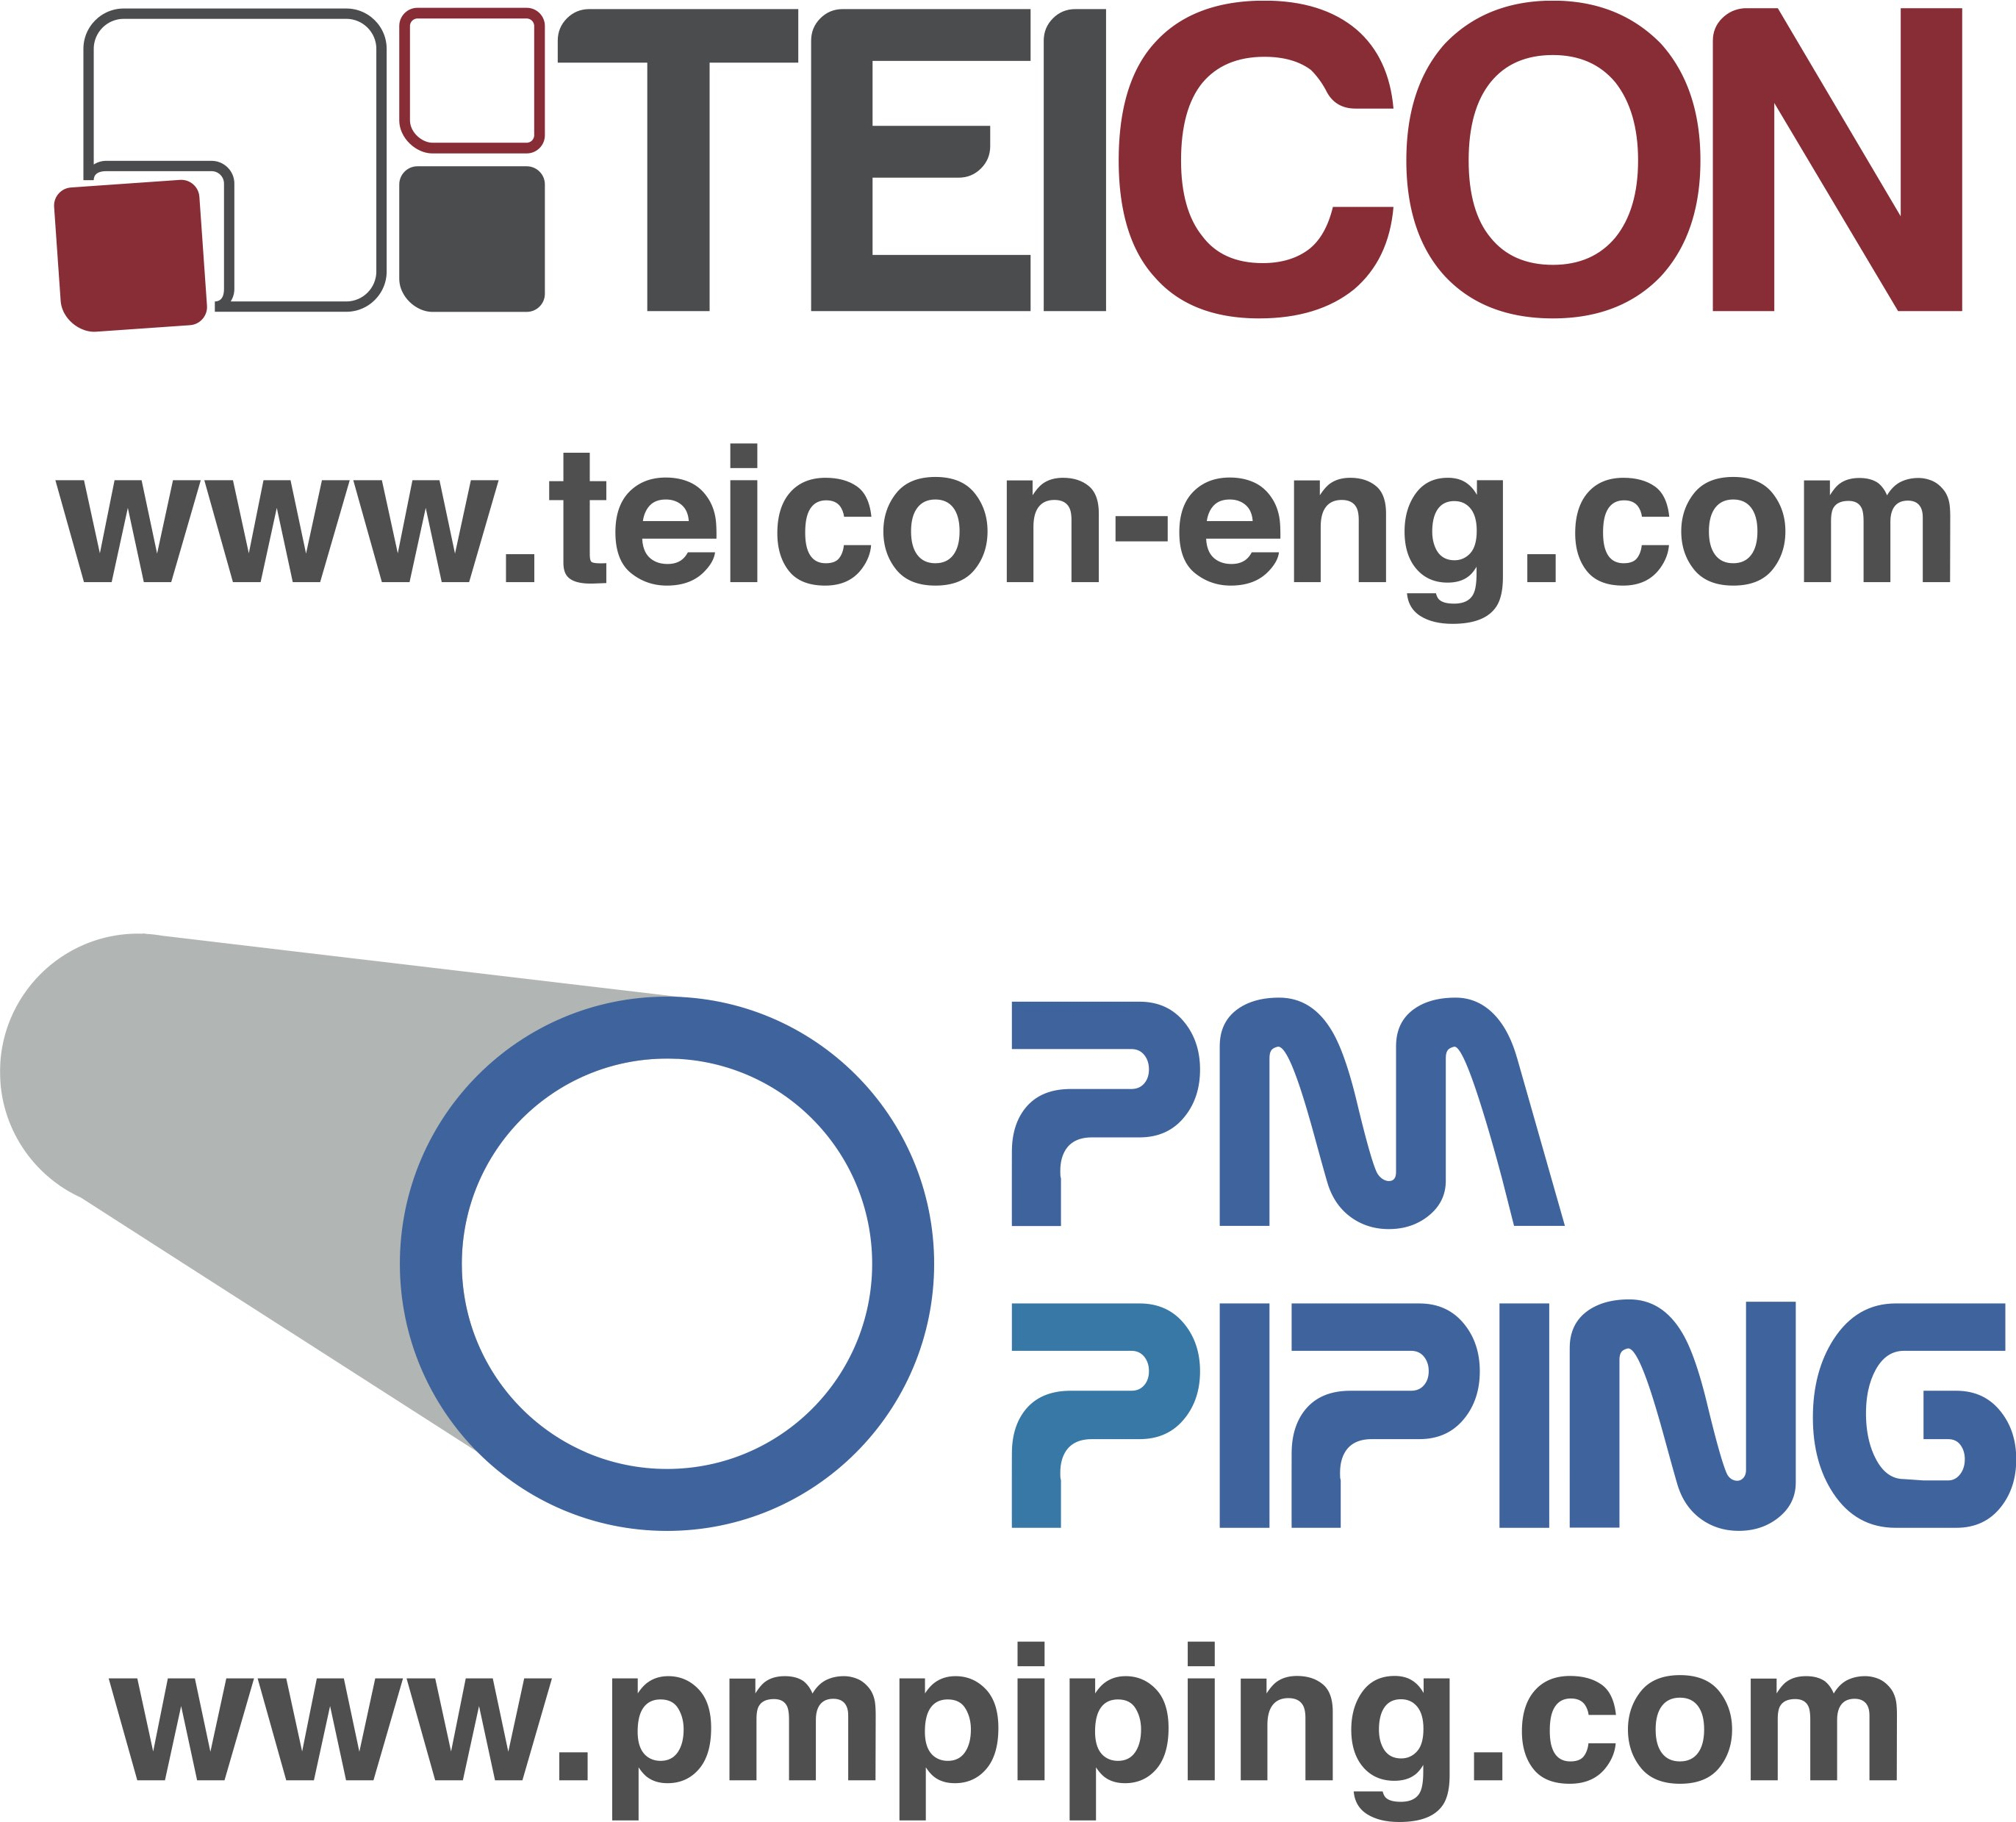 TEICON Engineering GmbH